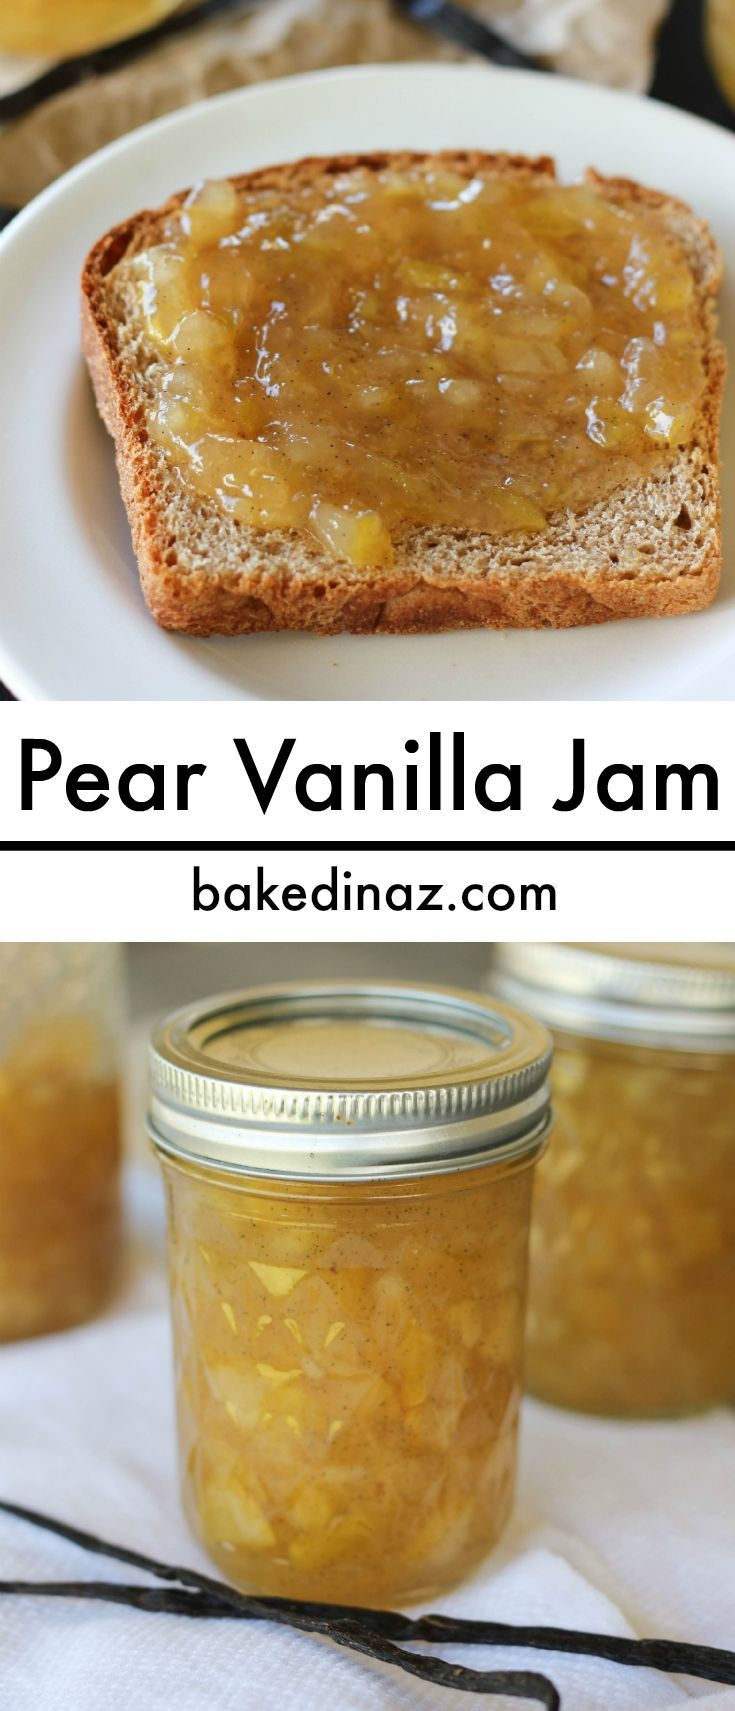 ... Pinterest | Pear preserves, Canning zucchini and Canned tomato salsa